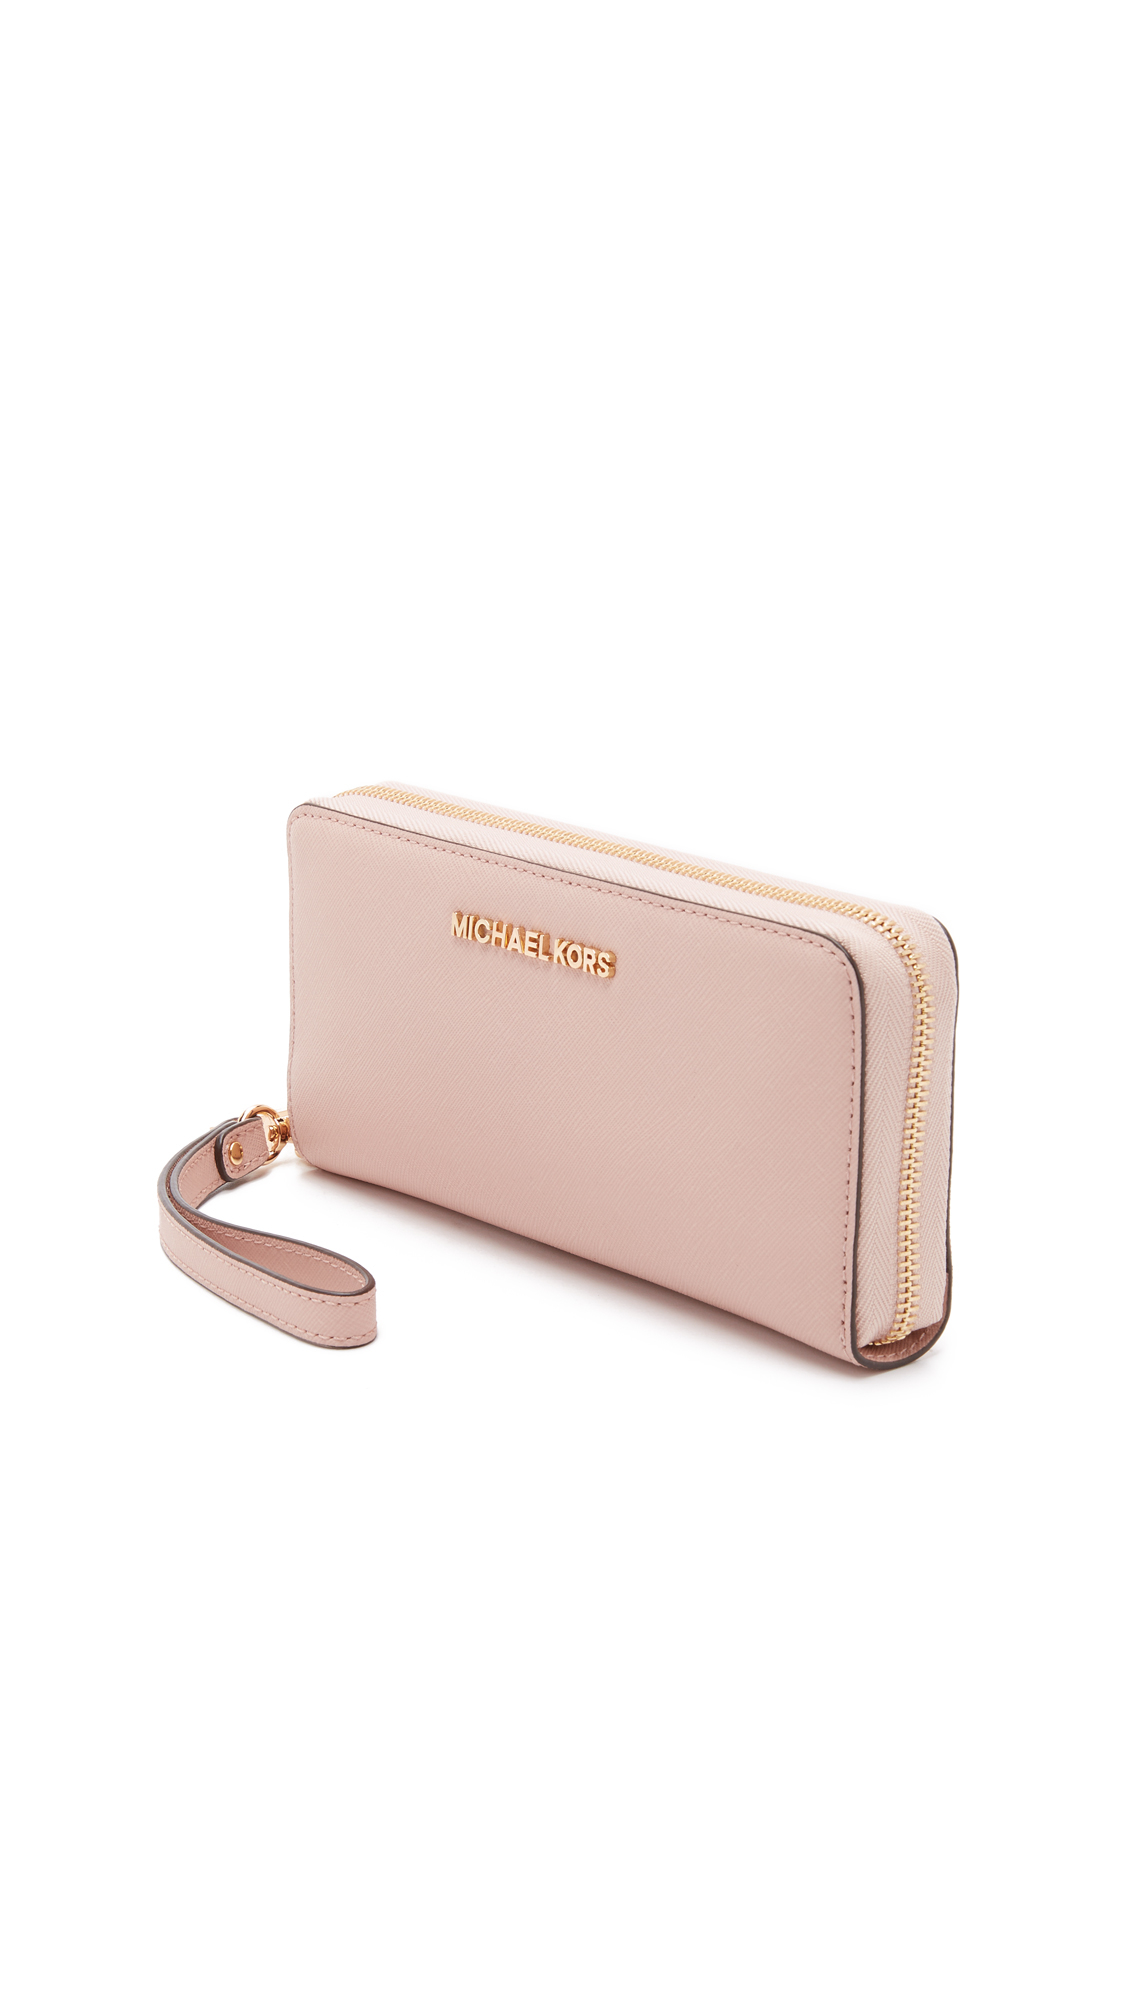 6b89cef136f7d Lyst - MICHAEL Michael Kors Jet Set Travel Continental Wallet - Ballet in  Pink